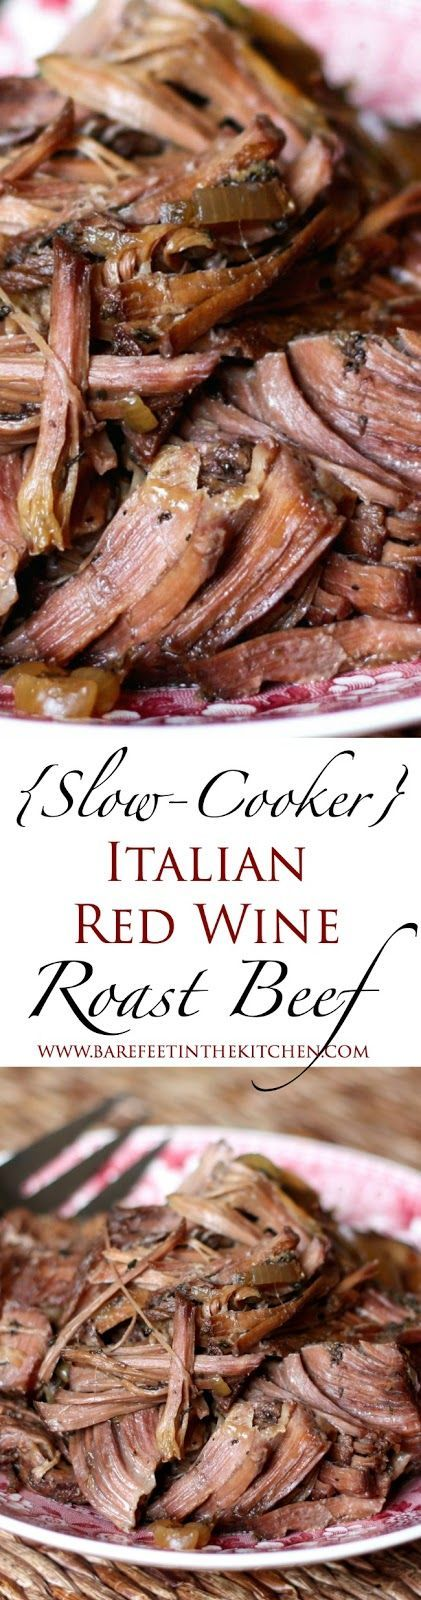 Barefeet In The Kitchen: Slow-Cooker Italian Red Wine Roast Beef